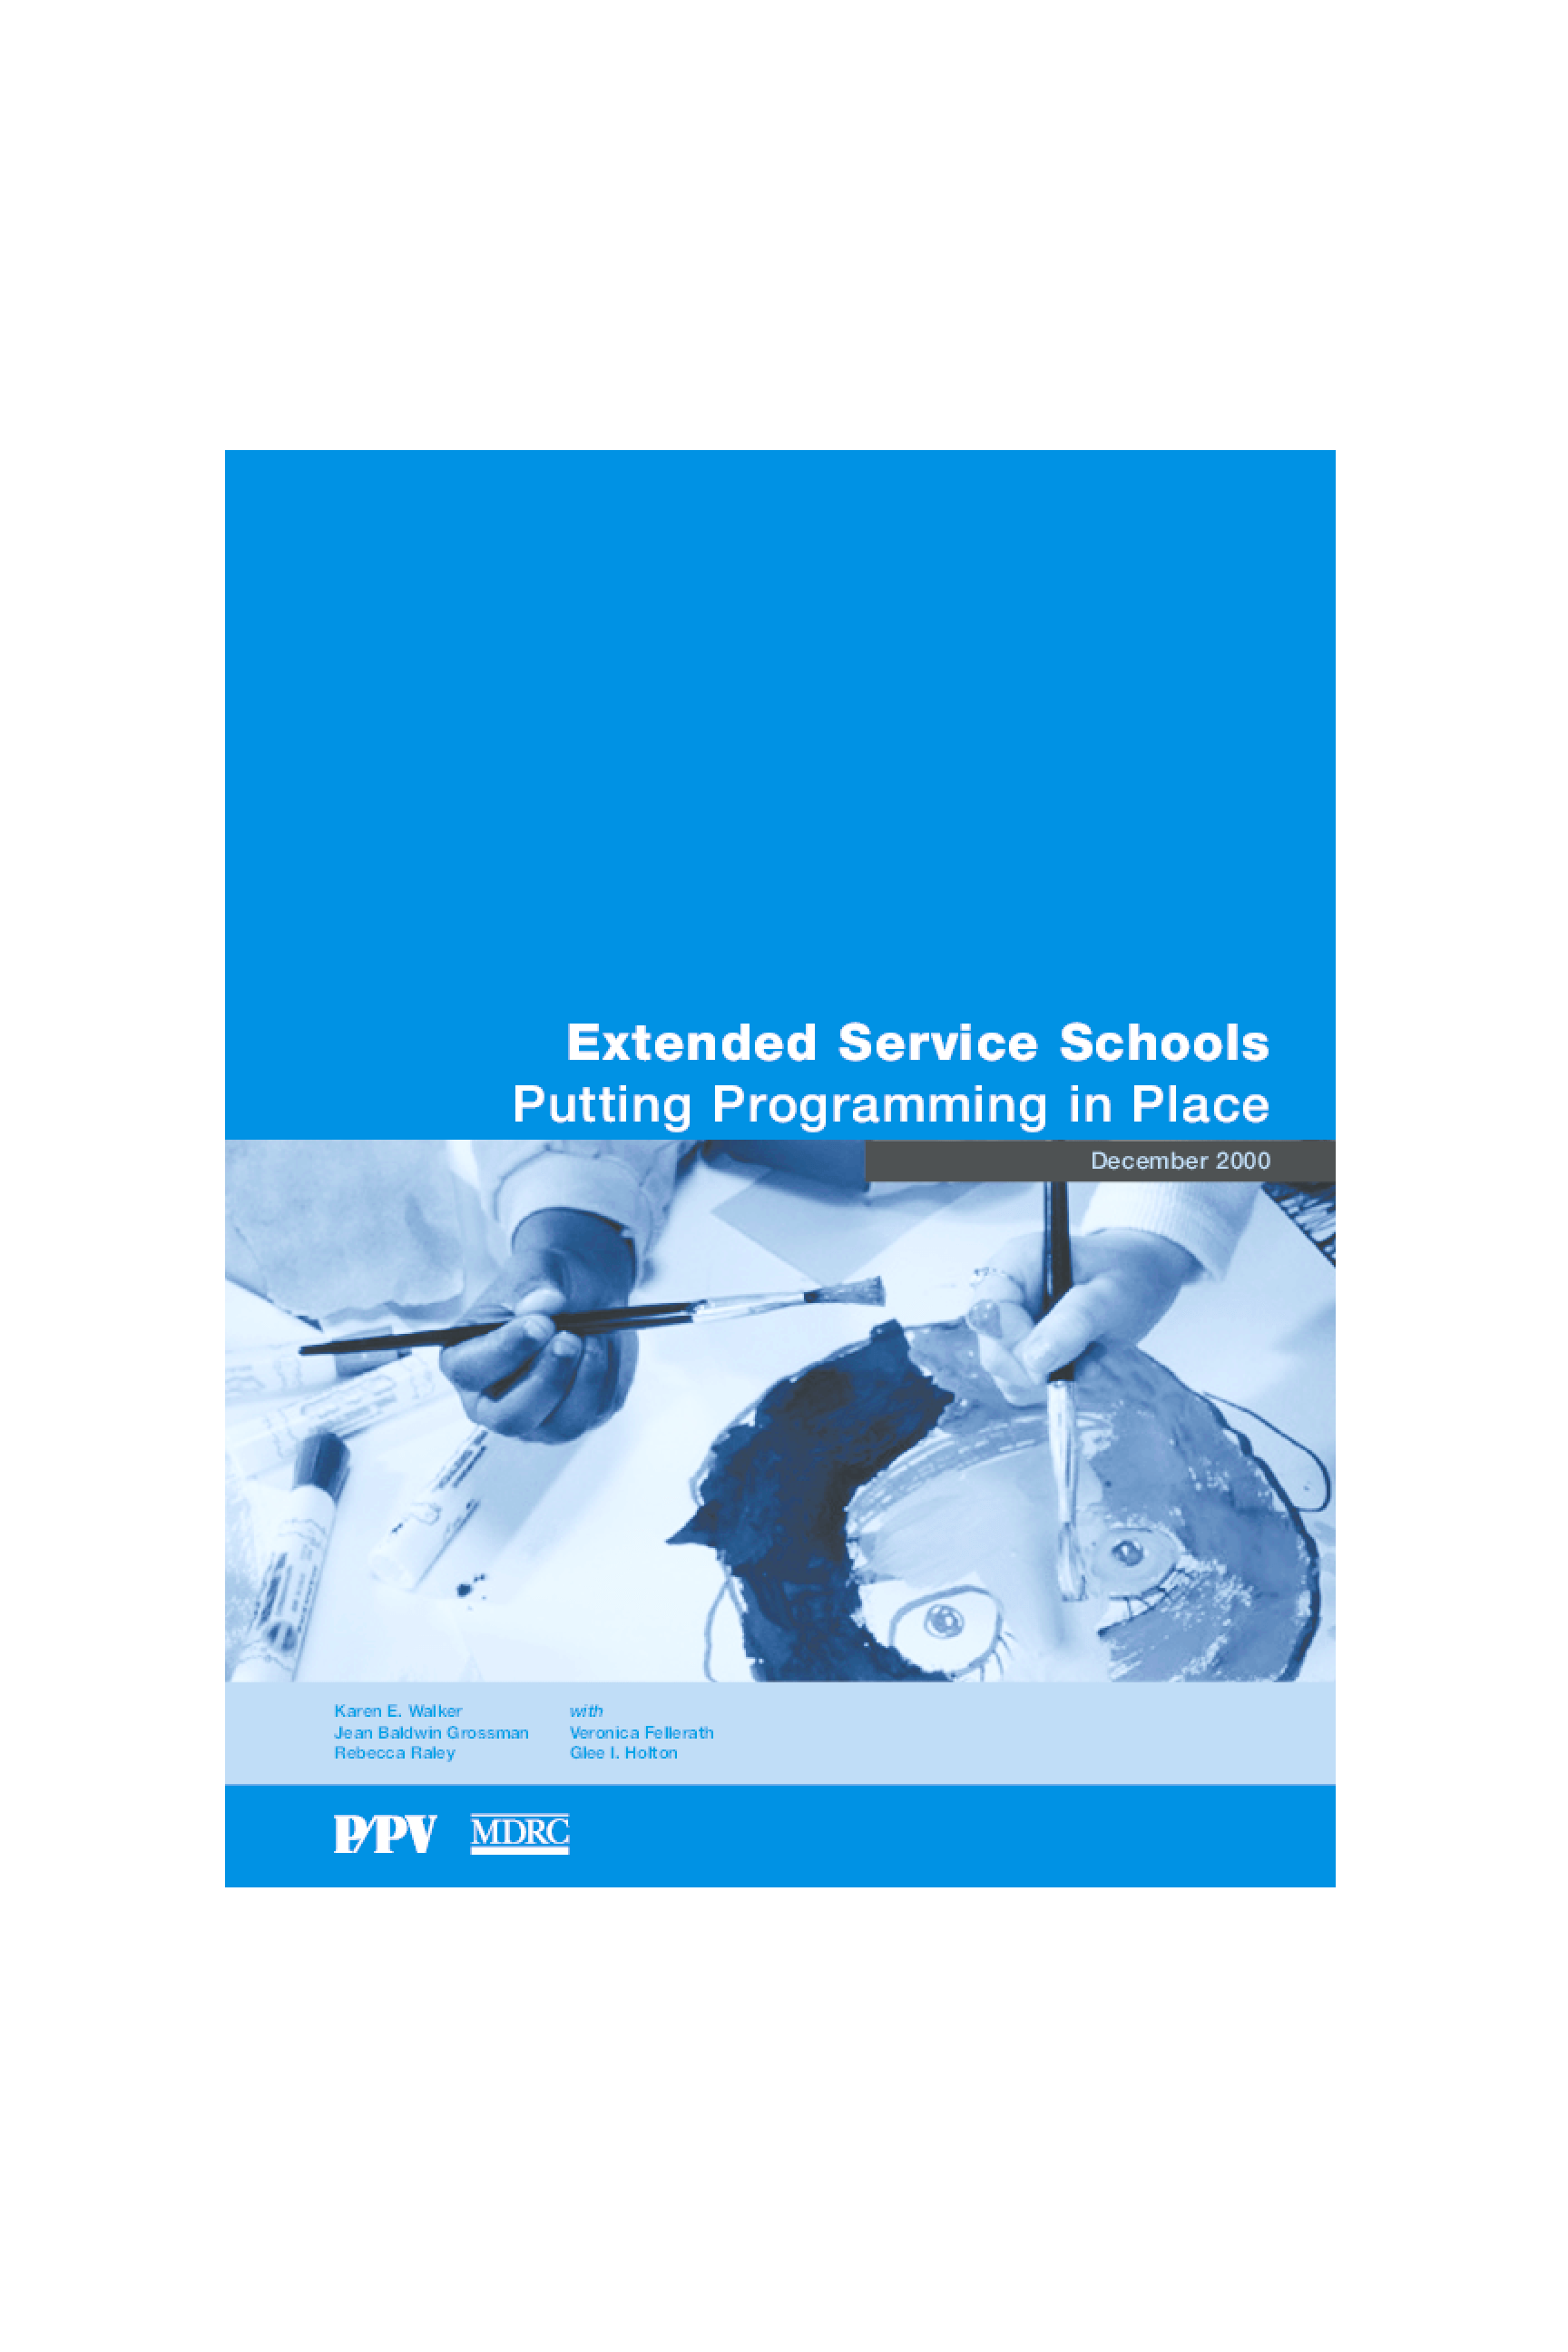 Extended-Service Schools: Putting Programming in Place